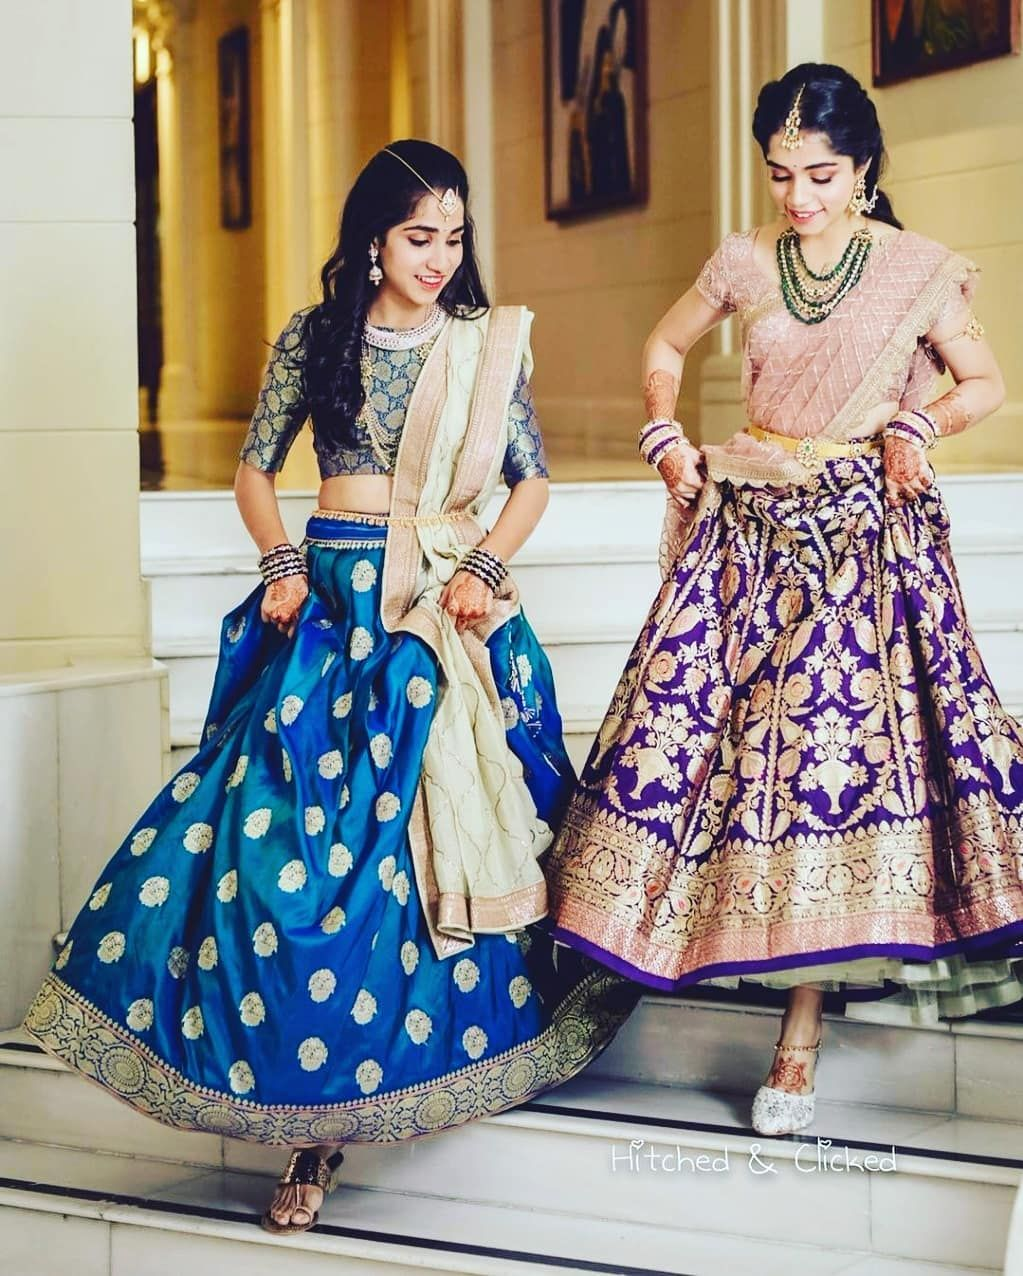 Sisters Before Misters Because They Are Soo Adorable Tag Your Pretty Sister Who Will Pose With Yo Lehenga Saree Design Saree Designs Half Saree Lehenga